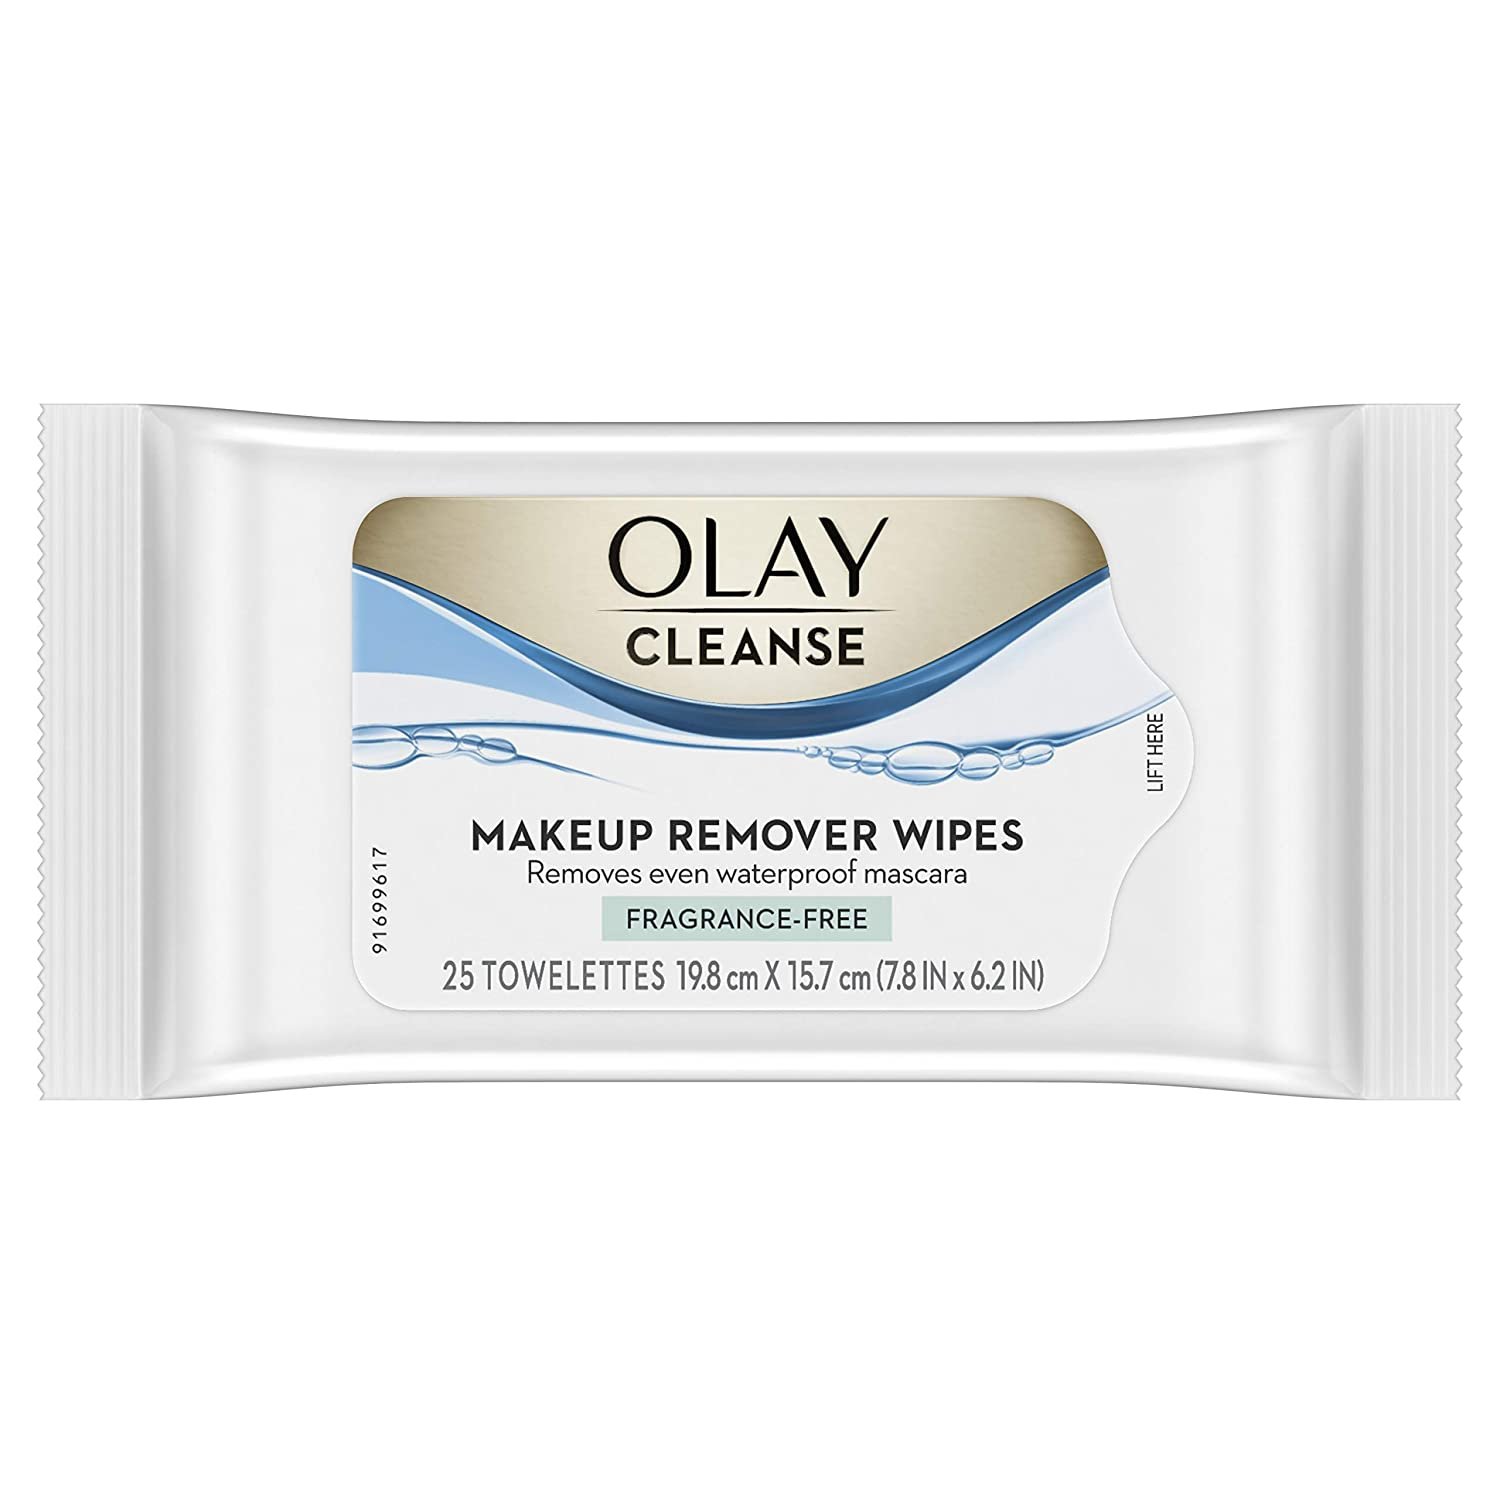 Olay Makeup Remover Wet Cloths, Fragrance Free, 25 Count (Packaging May Vary)